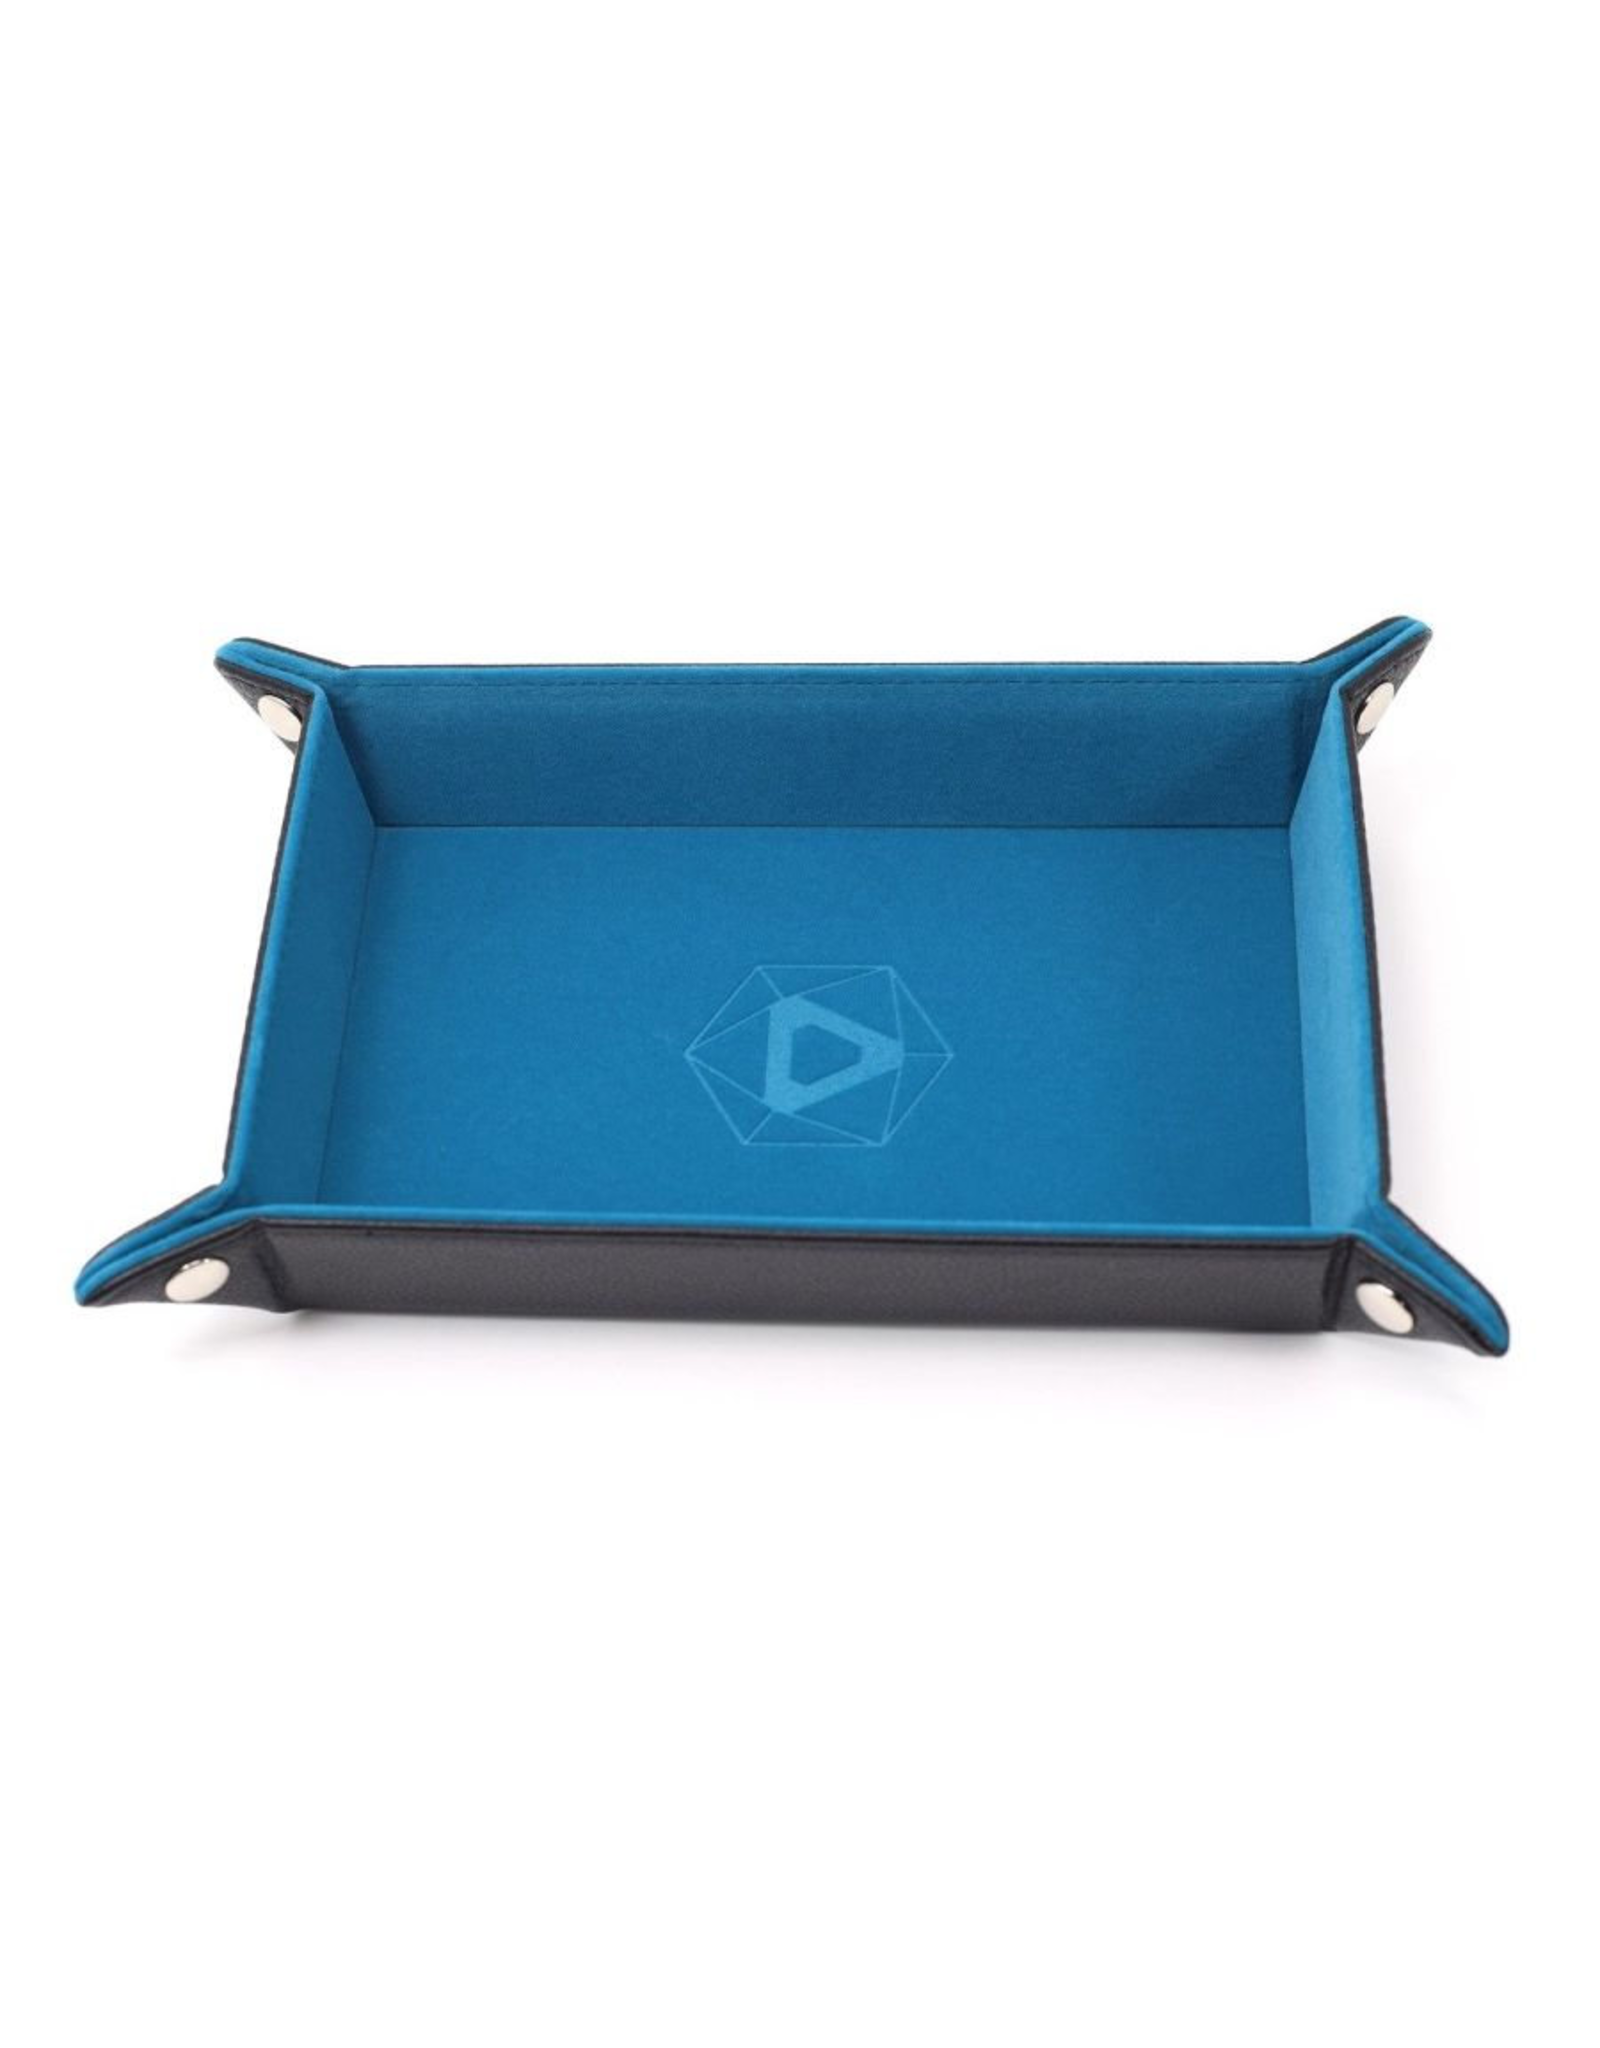 Die Hard Dice Die Hard Dice: Dice Tray Rectangle Teal